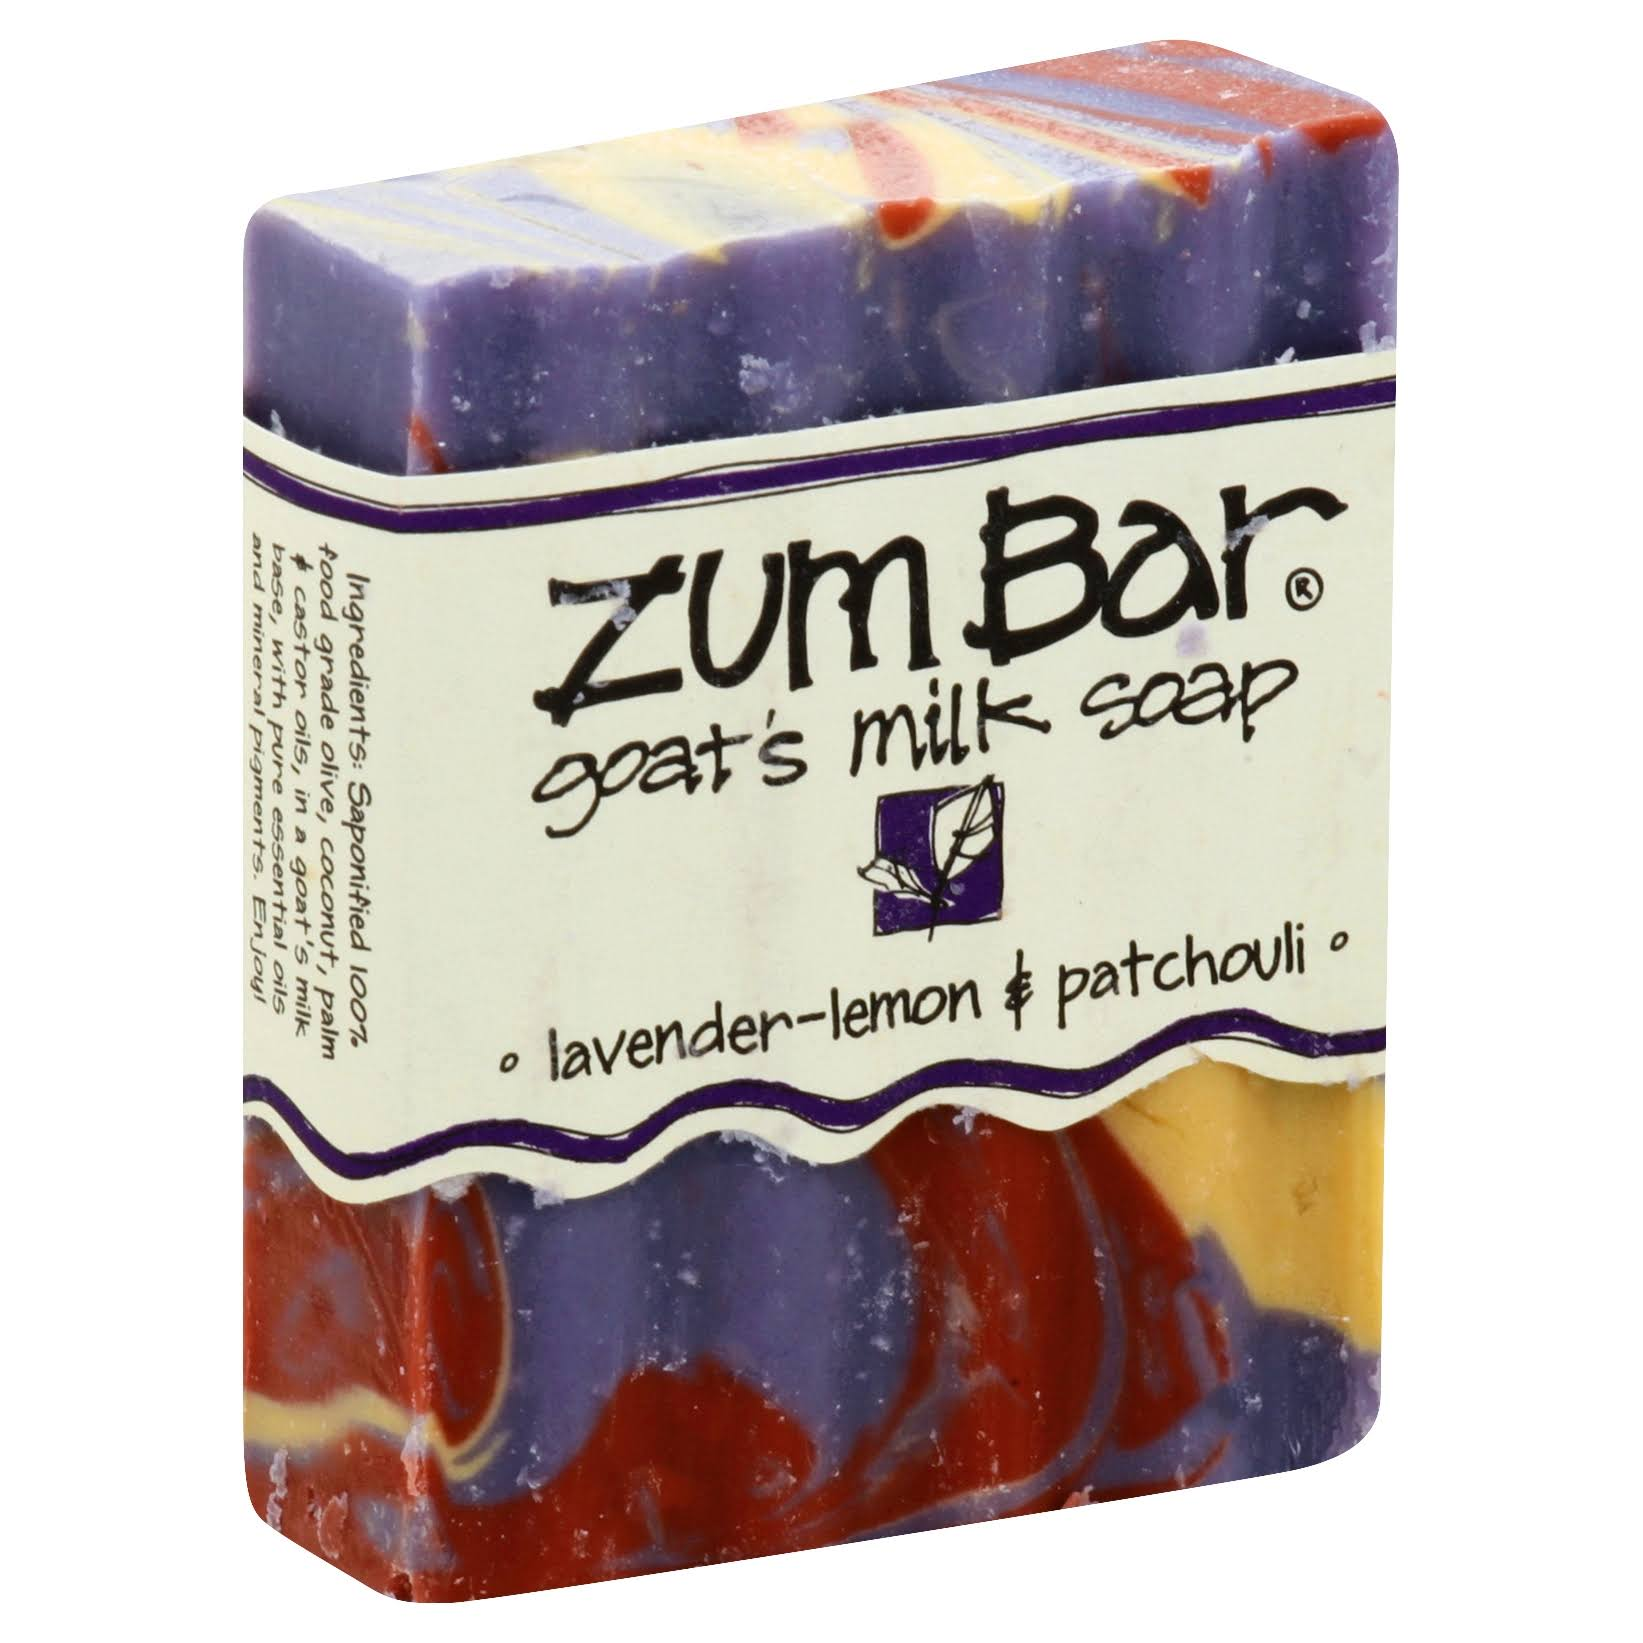 Zum Bar Goat's Milk Soap - Lavender-Lemon & Patchouli, 3oz